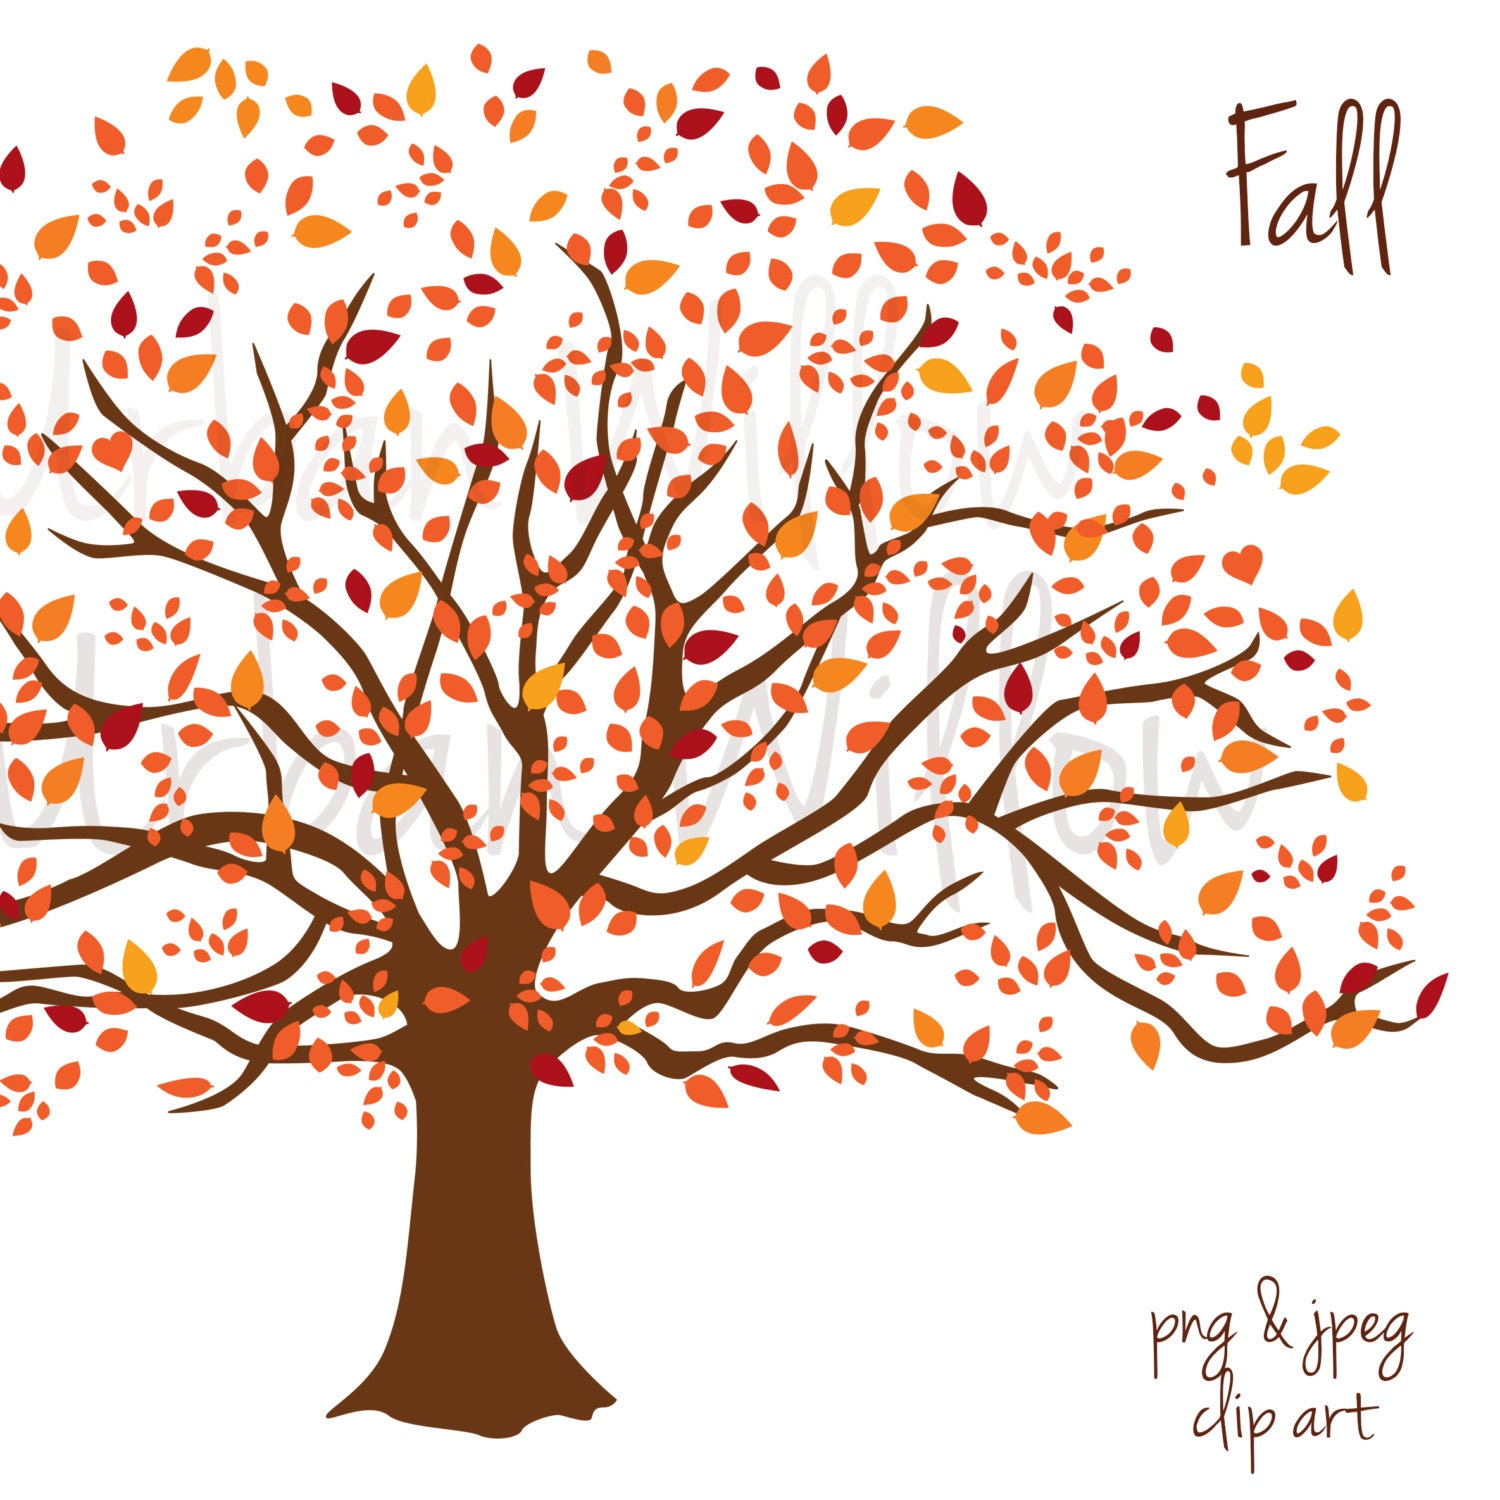 FALL, Clip art tree - Clip art image in 3 sizes (Small to ...